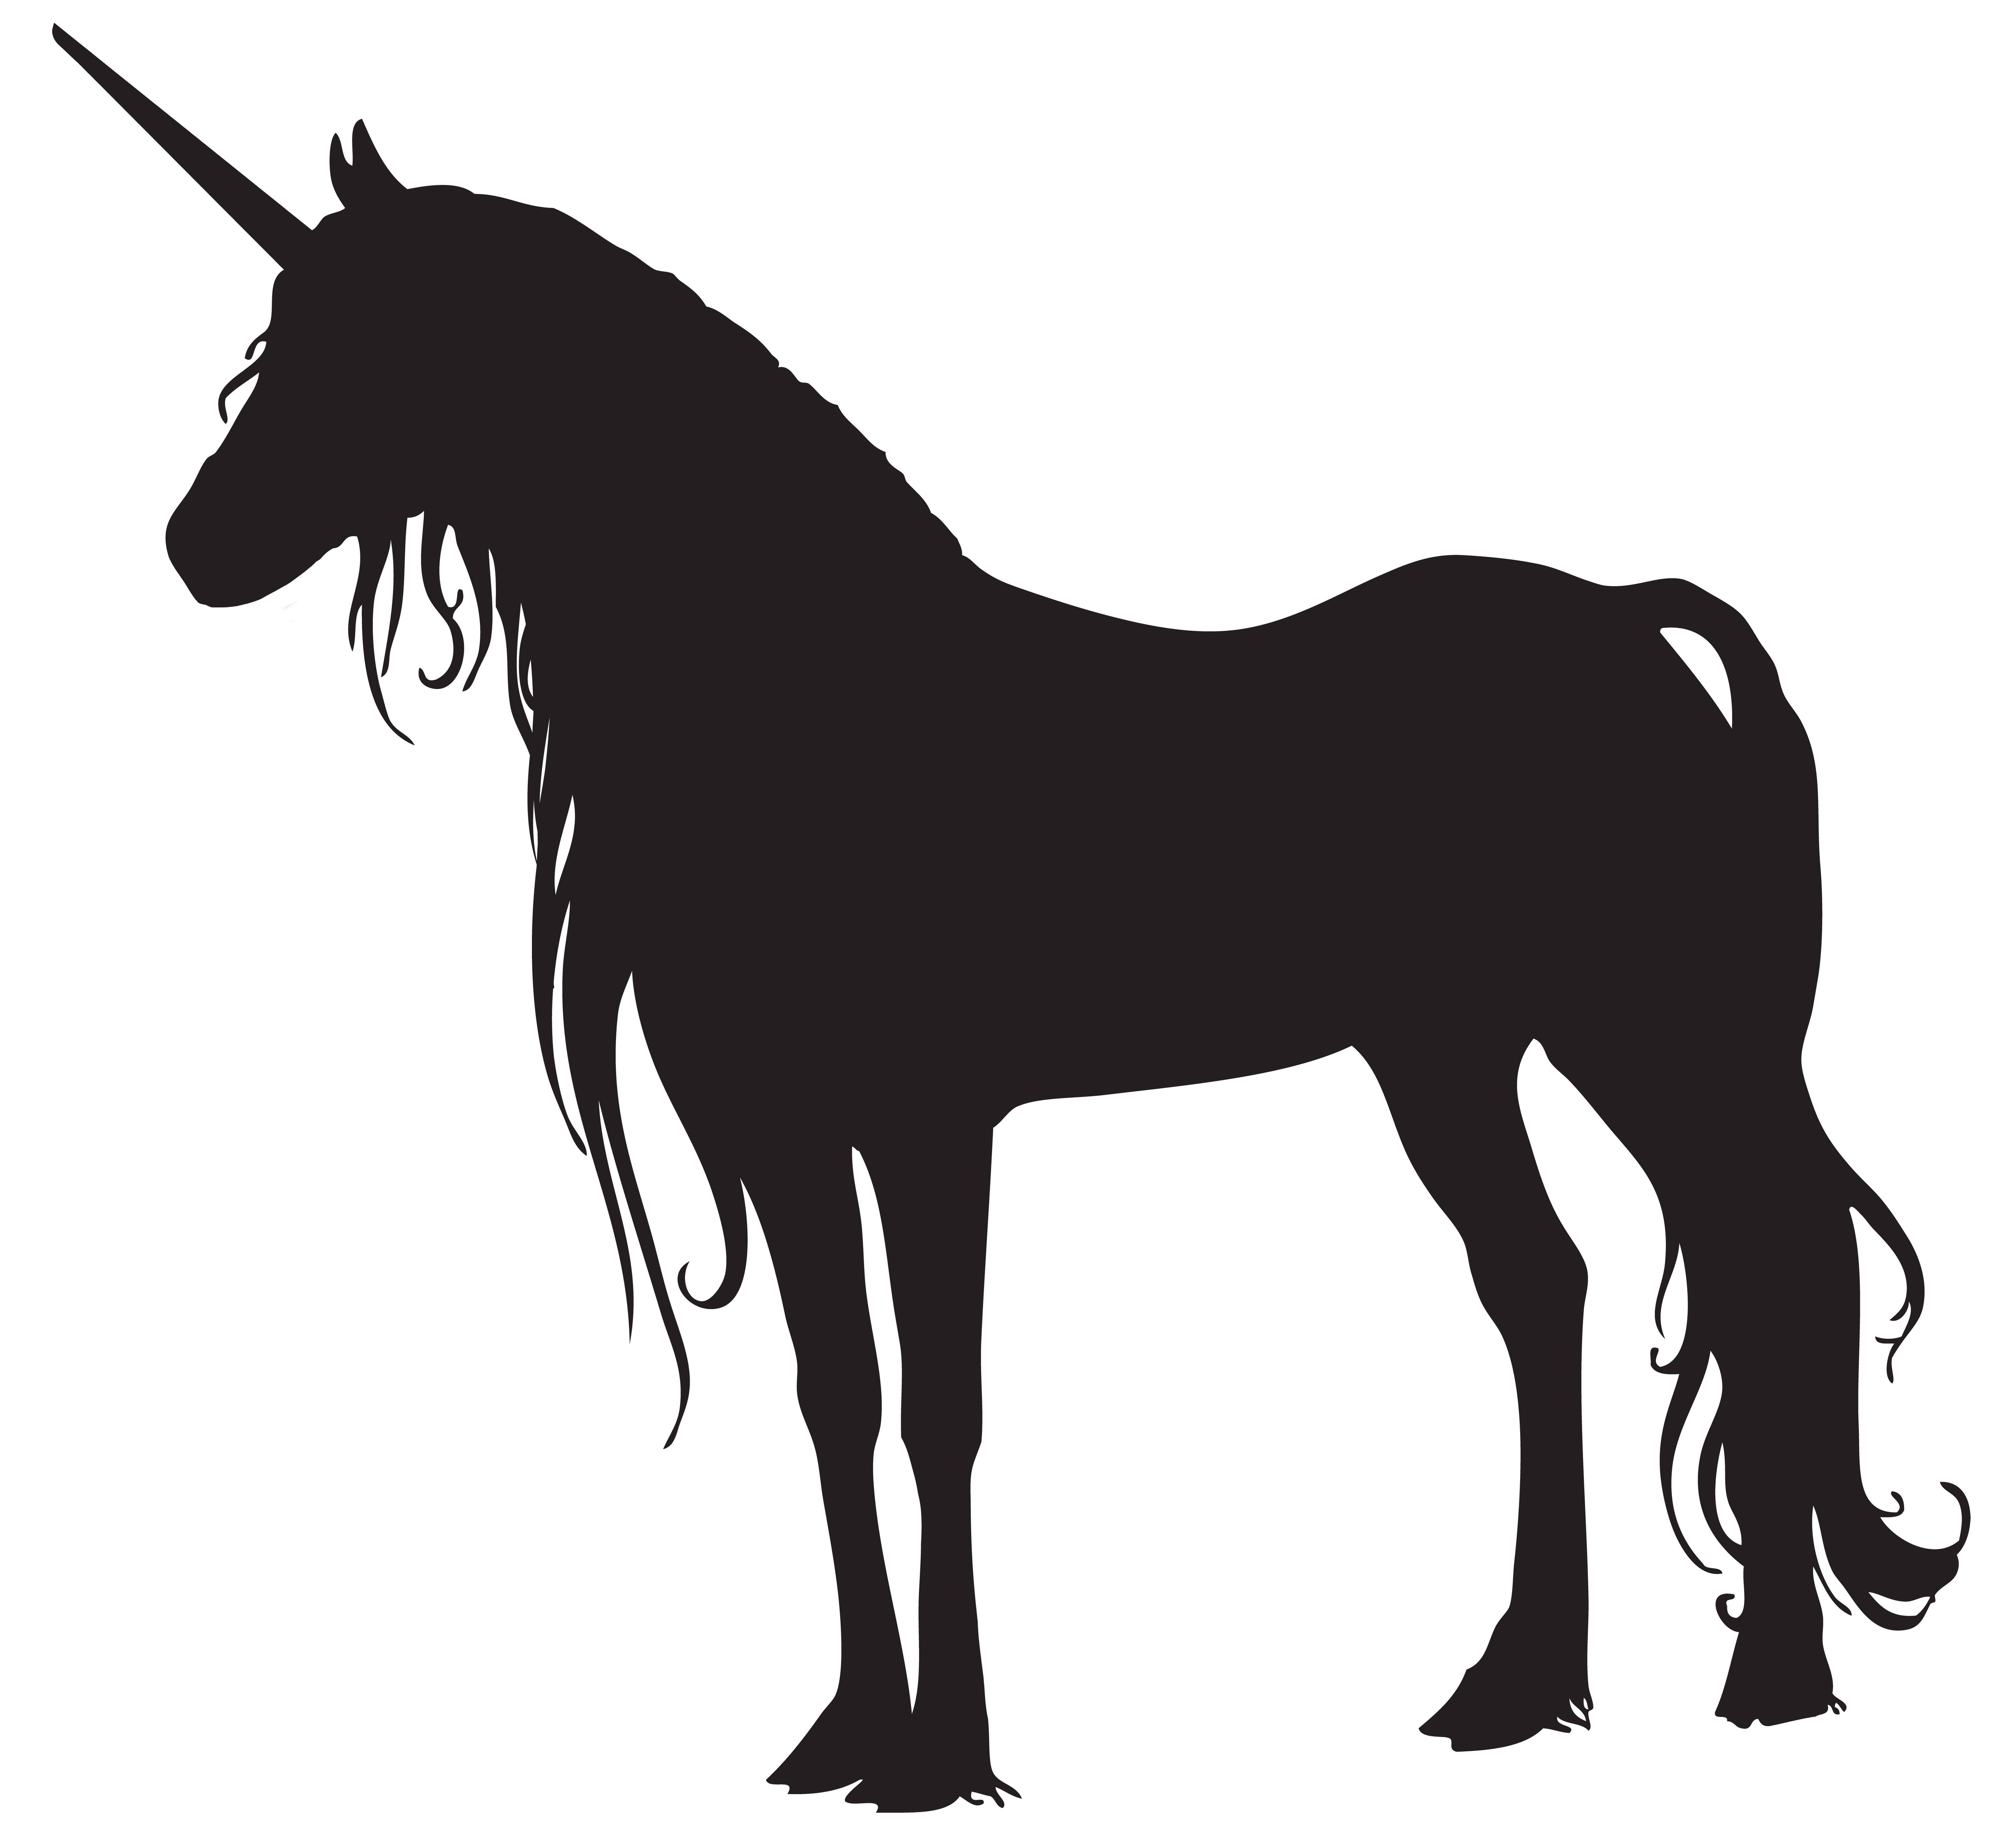 Clipart unicorn high resolution. Silhouette png clip art